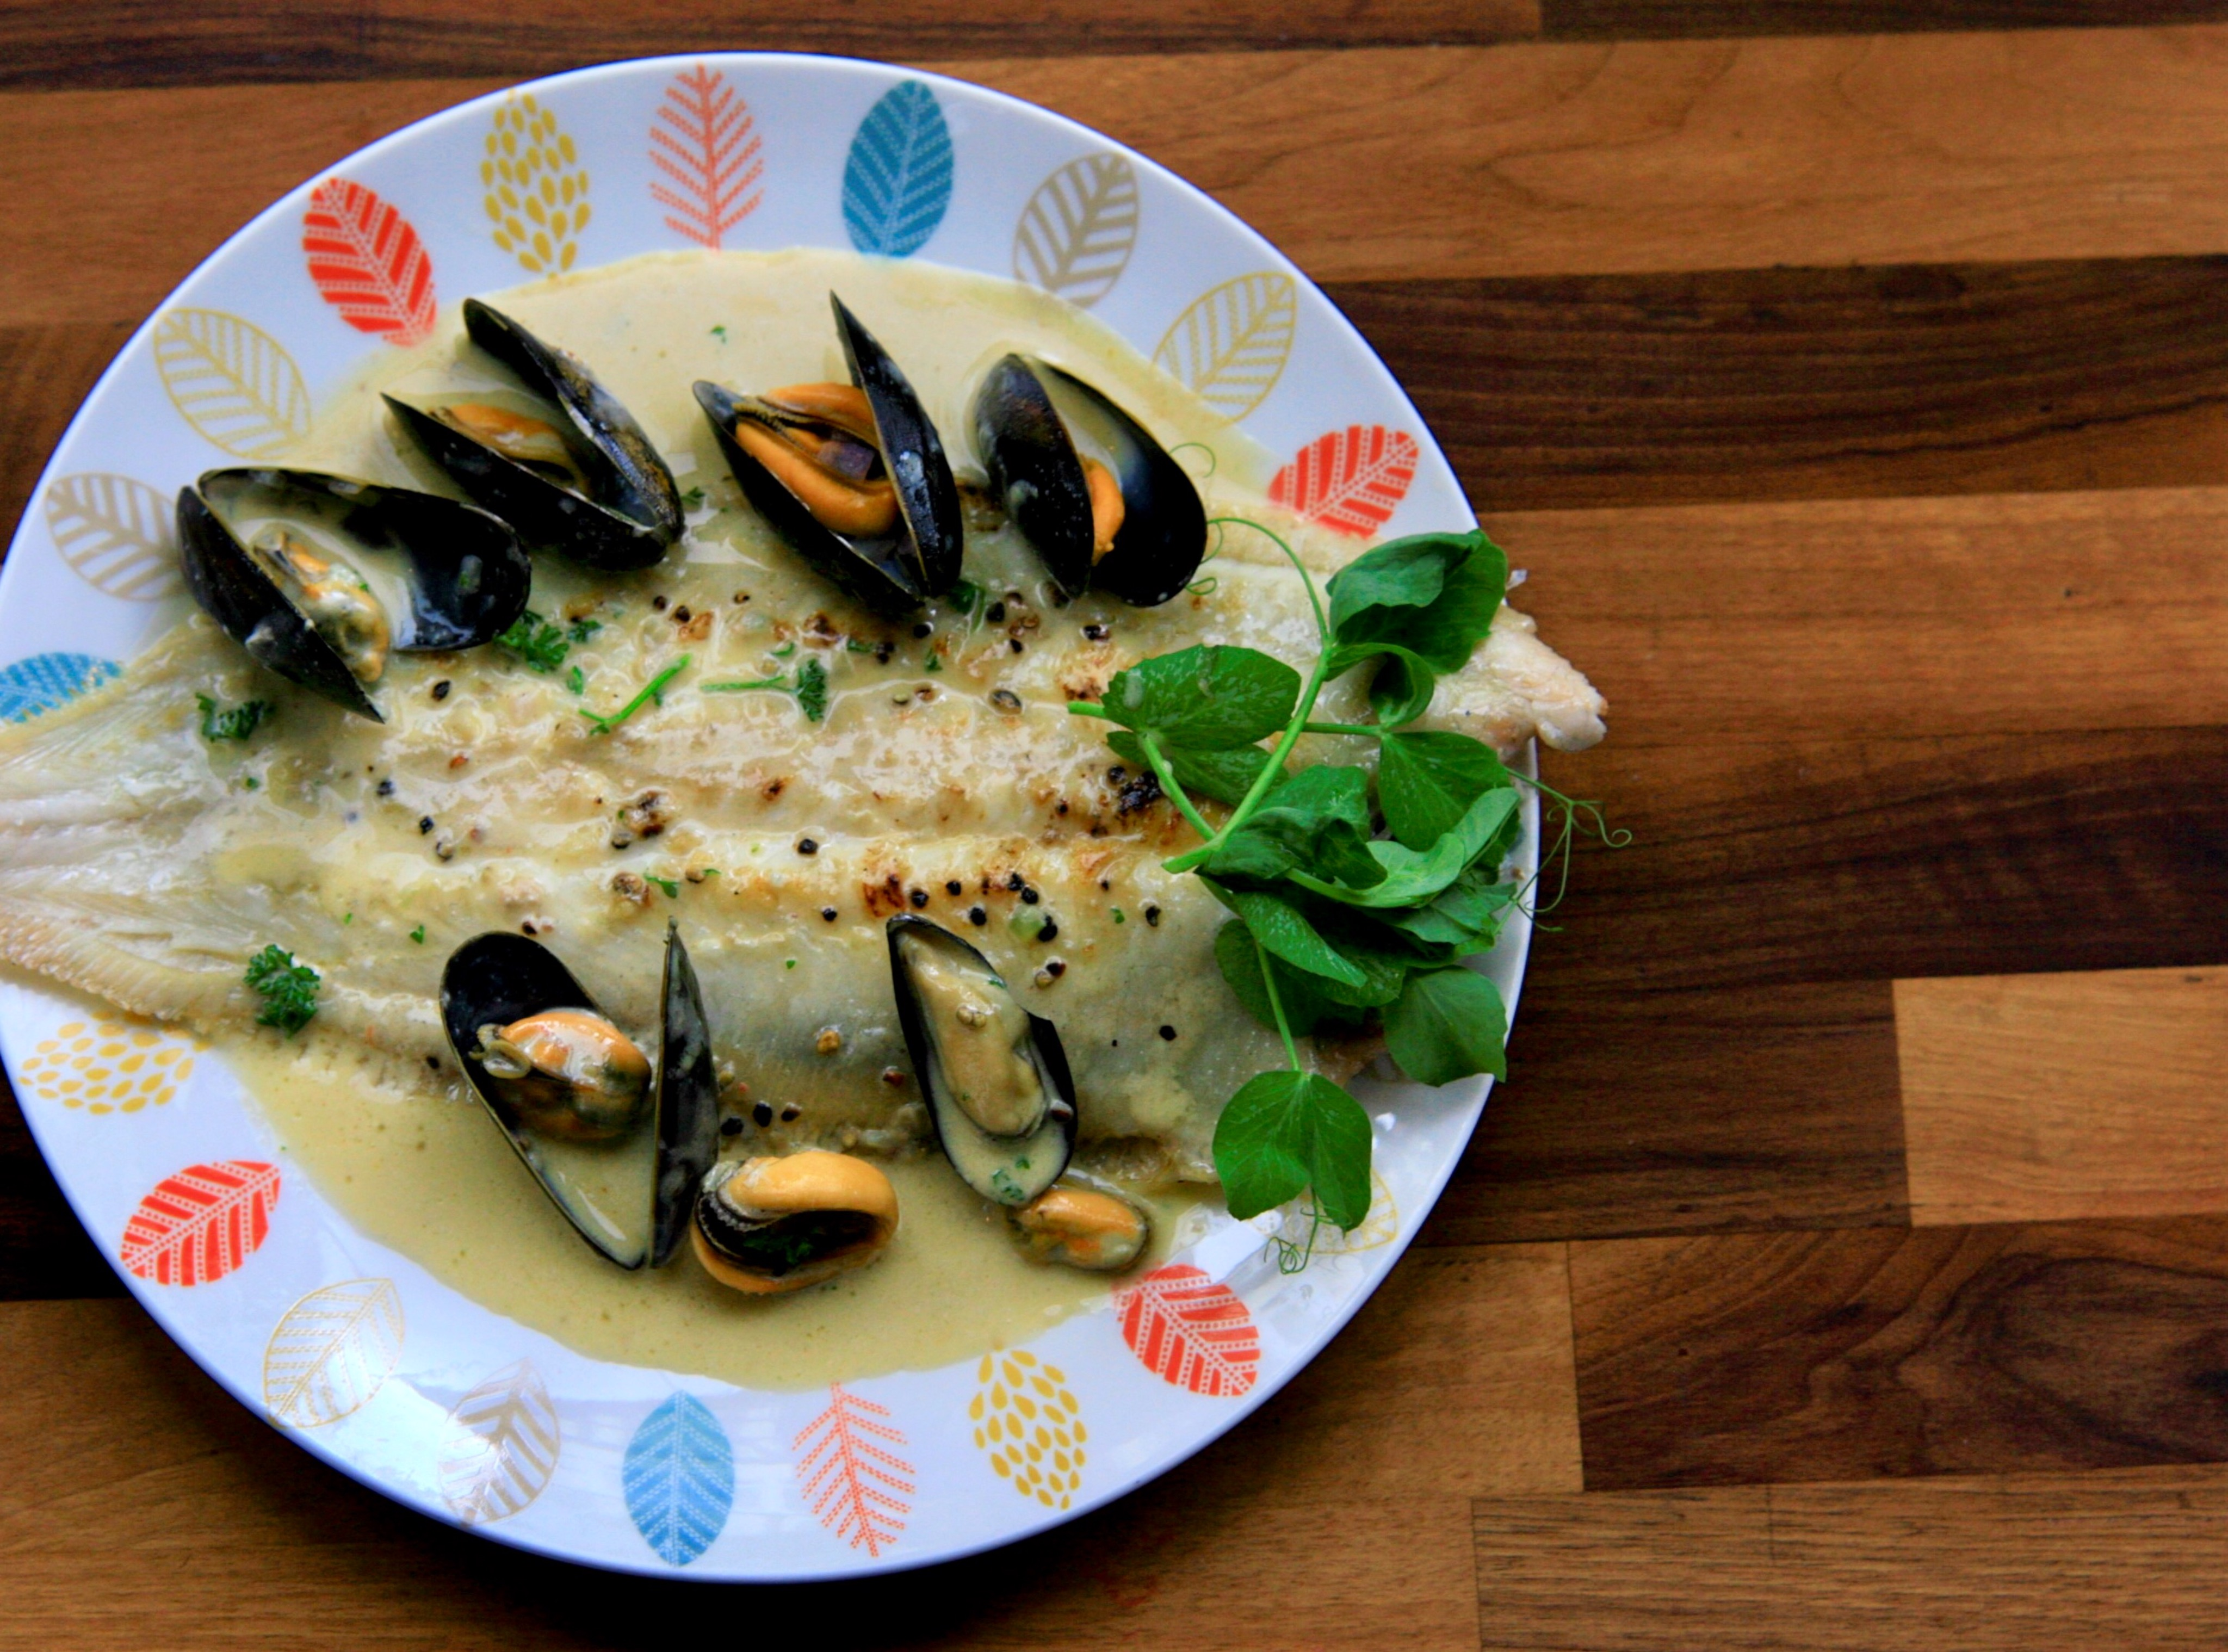 Grilled whole Sole with white wine cream sauce and mussels